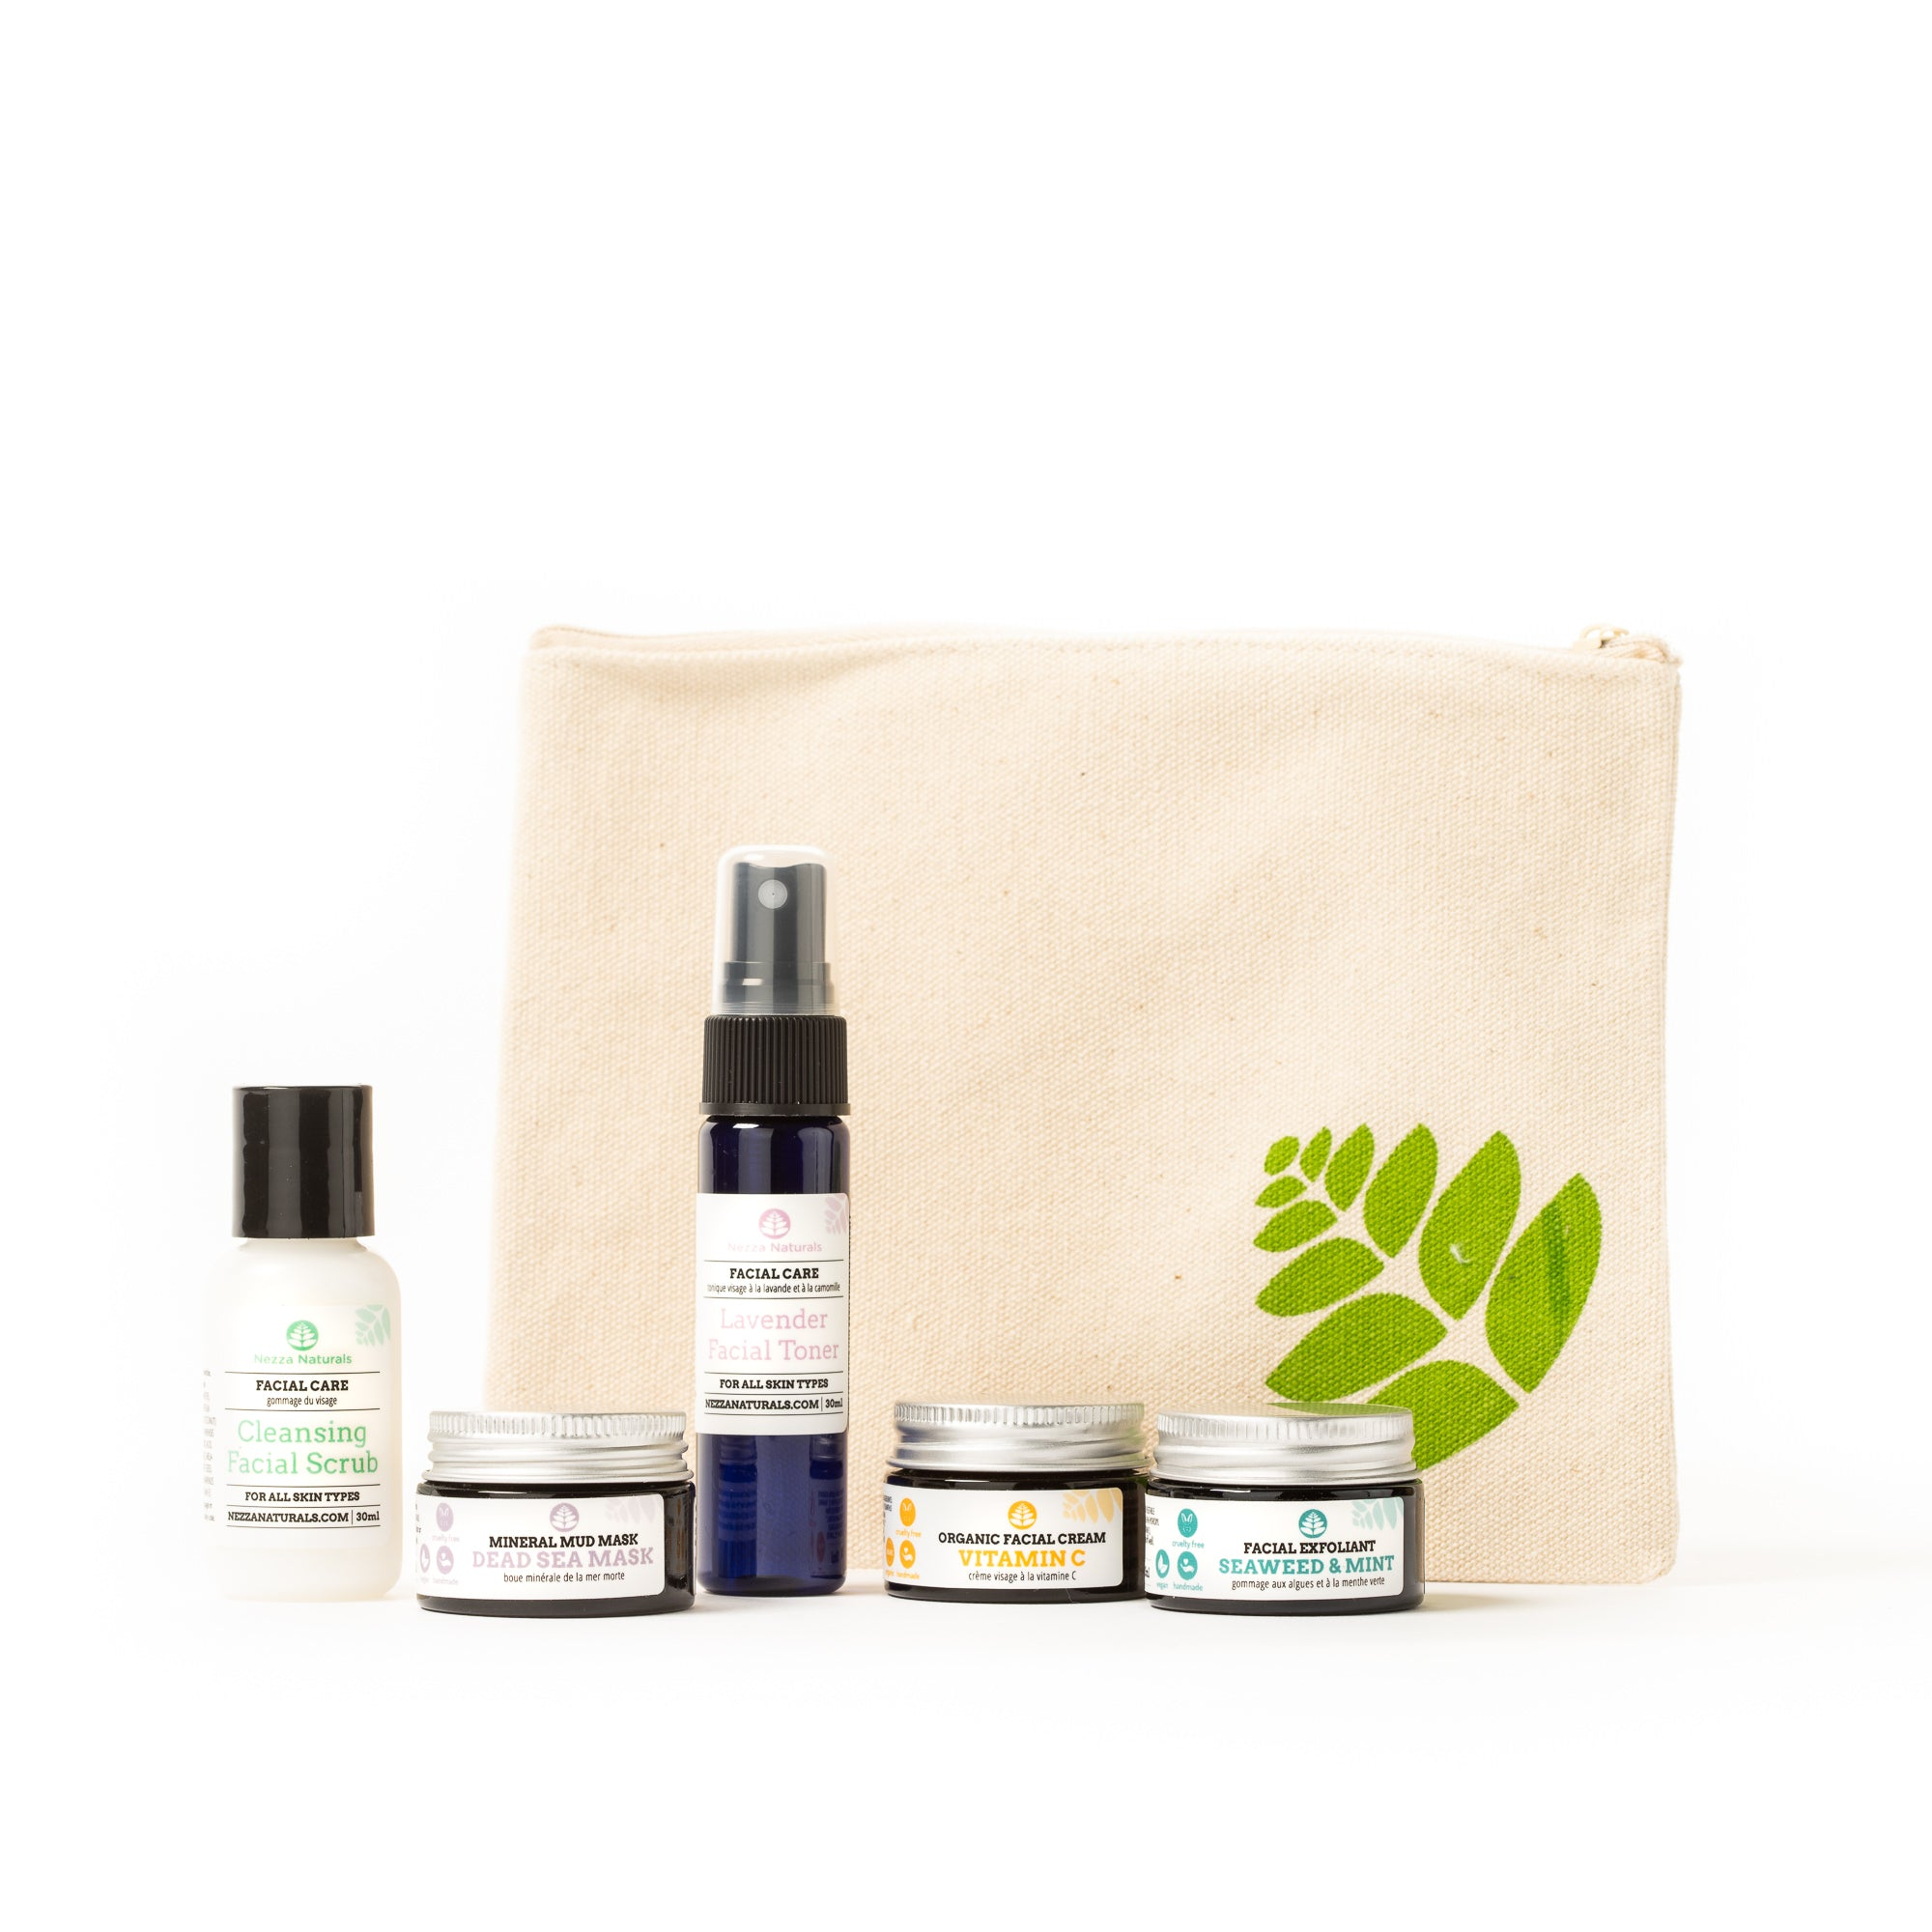 GLOW Facial Starter Kit for Normal Skin